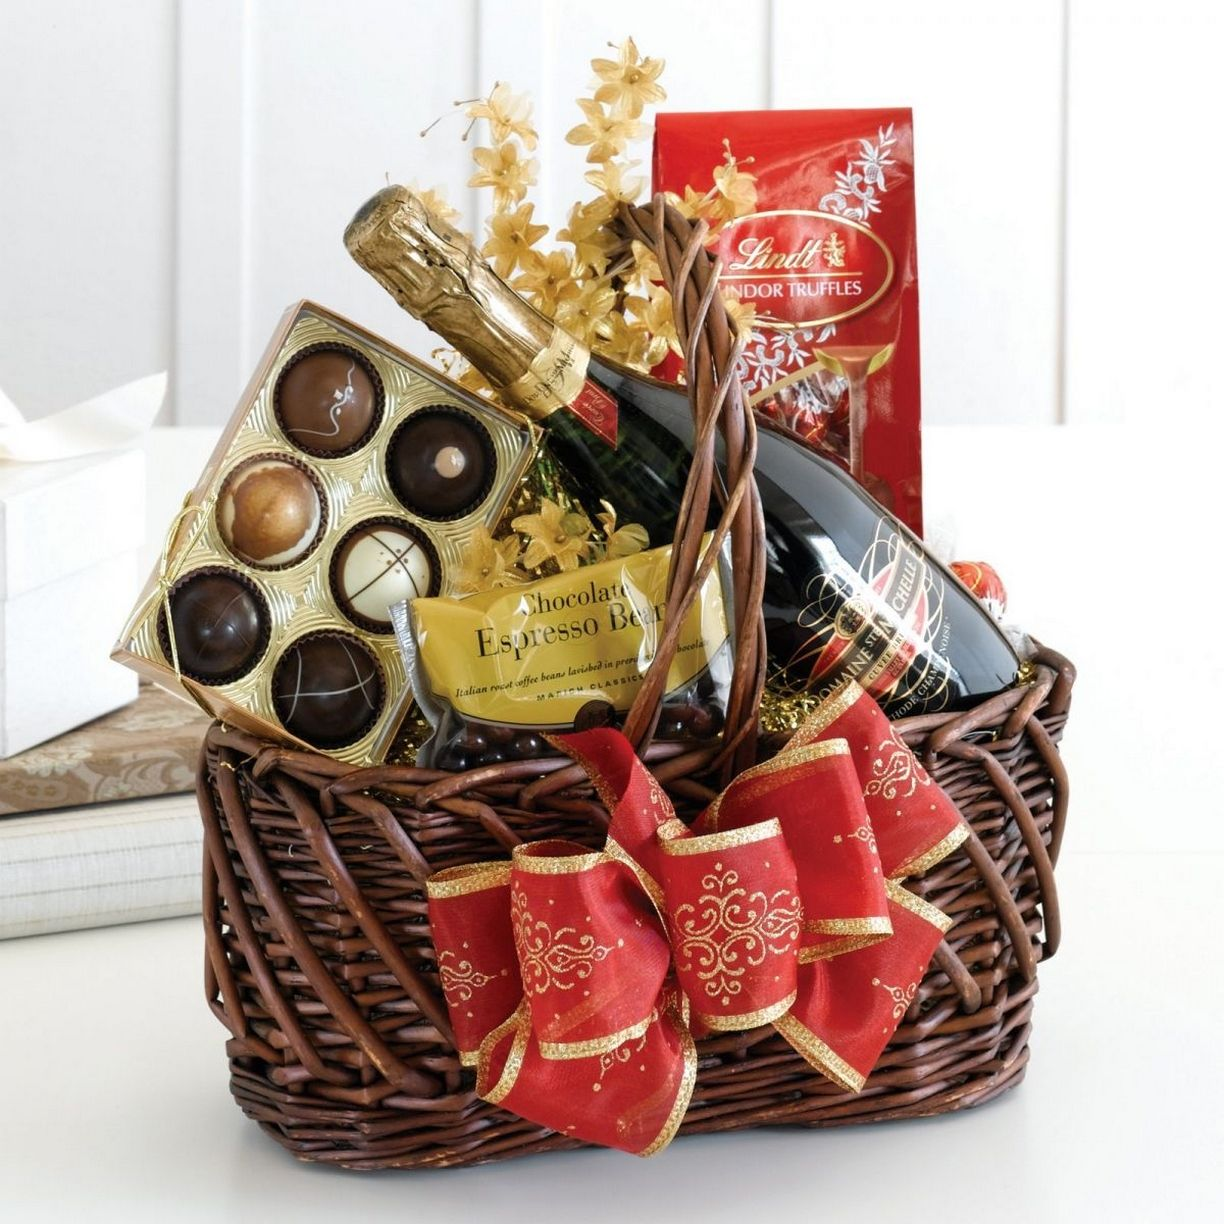 60 Awesome Easy Diy Christmas Gifts Ideas In 2020 Christmas Gift Baskets Diy Christmas Gift Baskets Family Gift Baskets